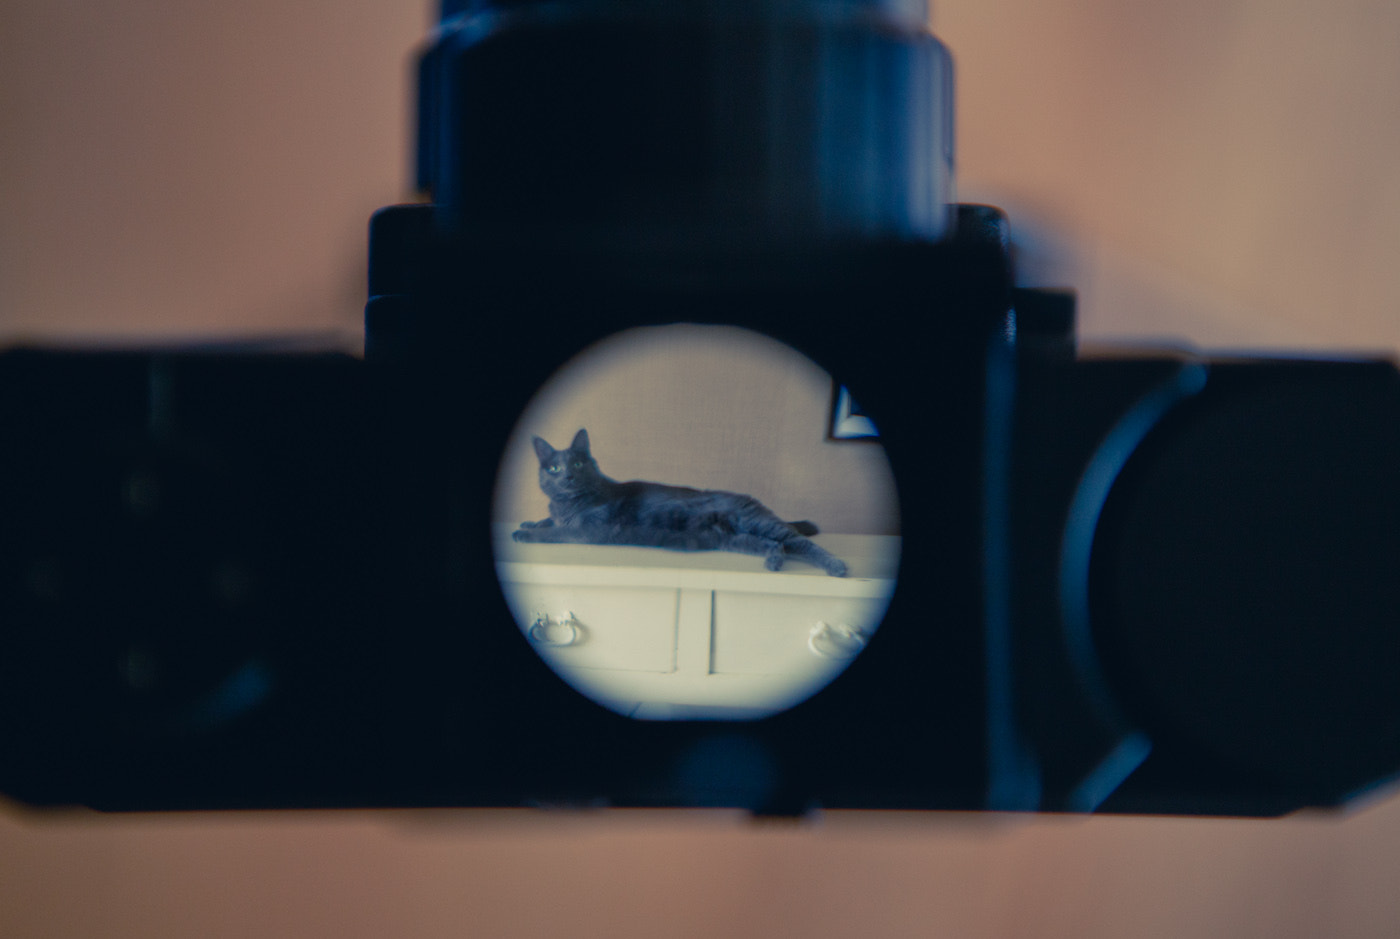 Photograph Cat in a Viewfinder by Benjamin Lehman on 500px